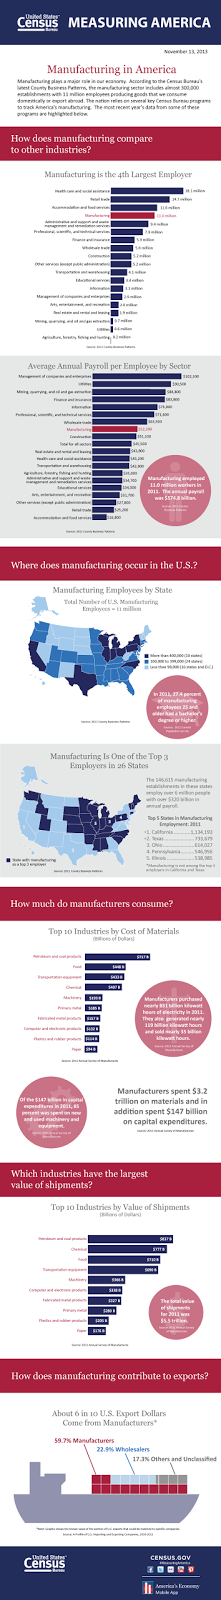 http://www.census.gov/how/infographics/manufacturing_in_america.html